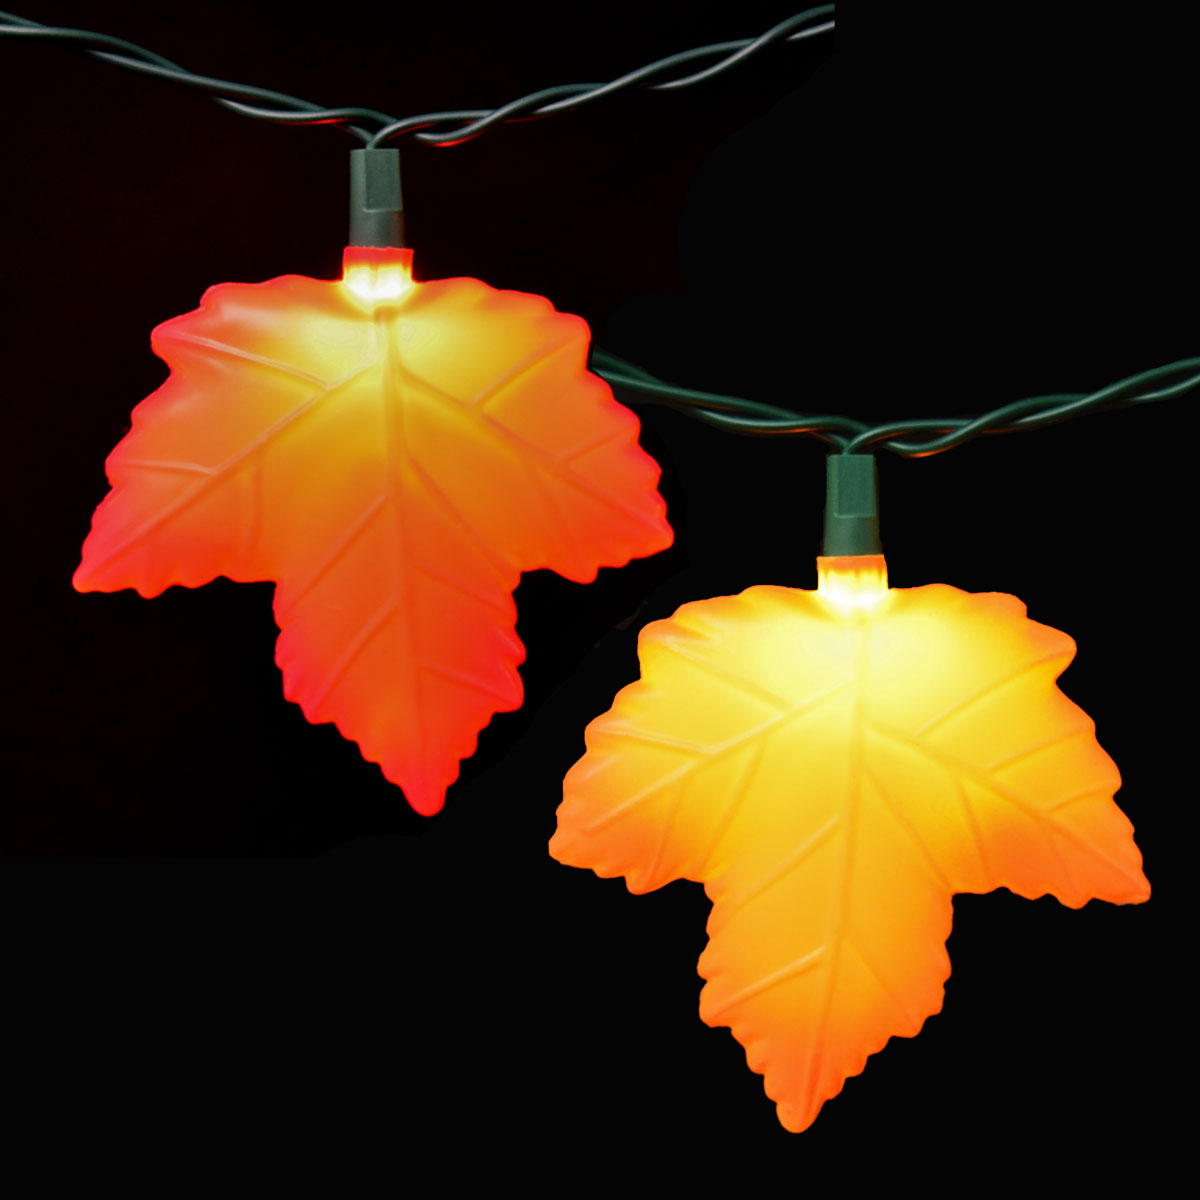 Turkey Party String Lights : Autumn Leaf Party String Lights - 10 Lights